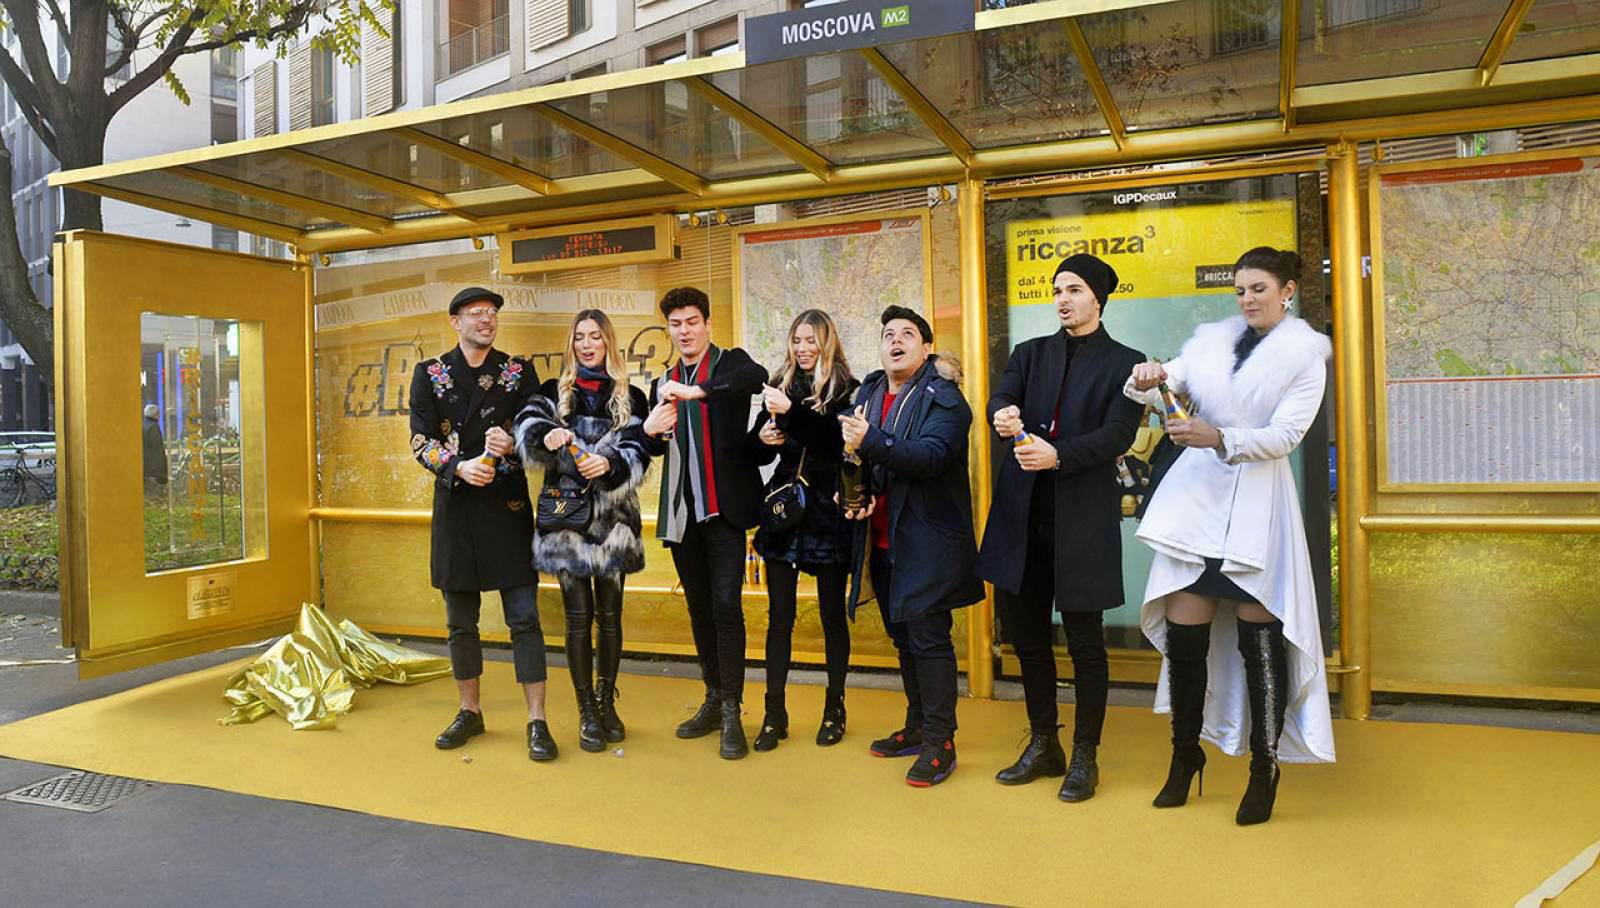 IGPDecaux Milan golden brand shelter for Riccanza MTV